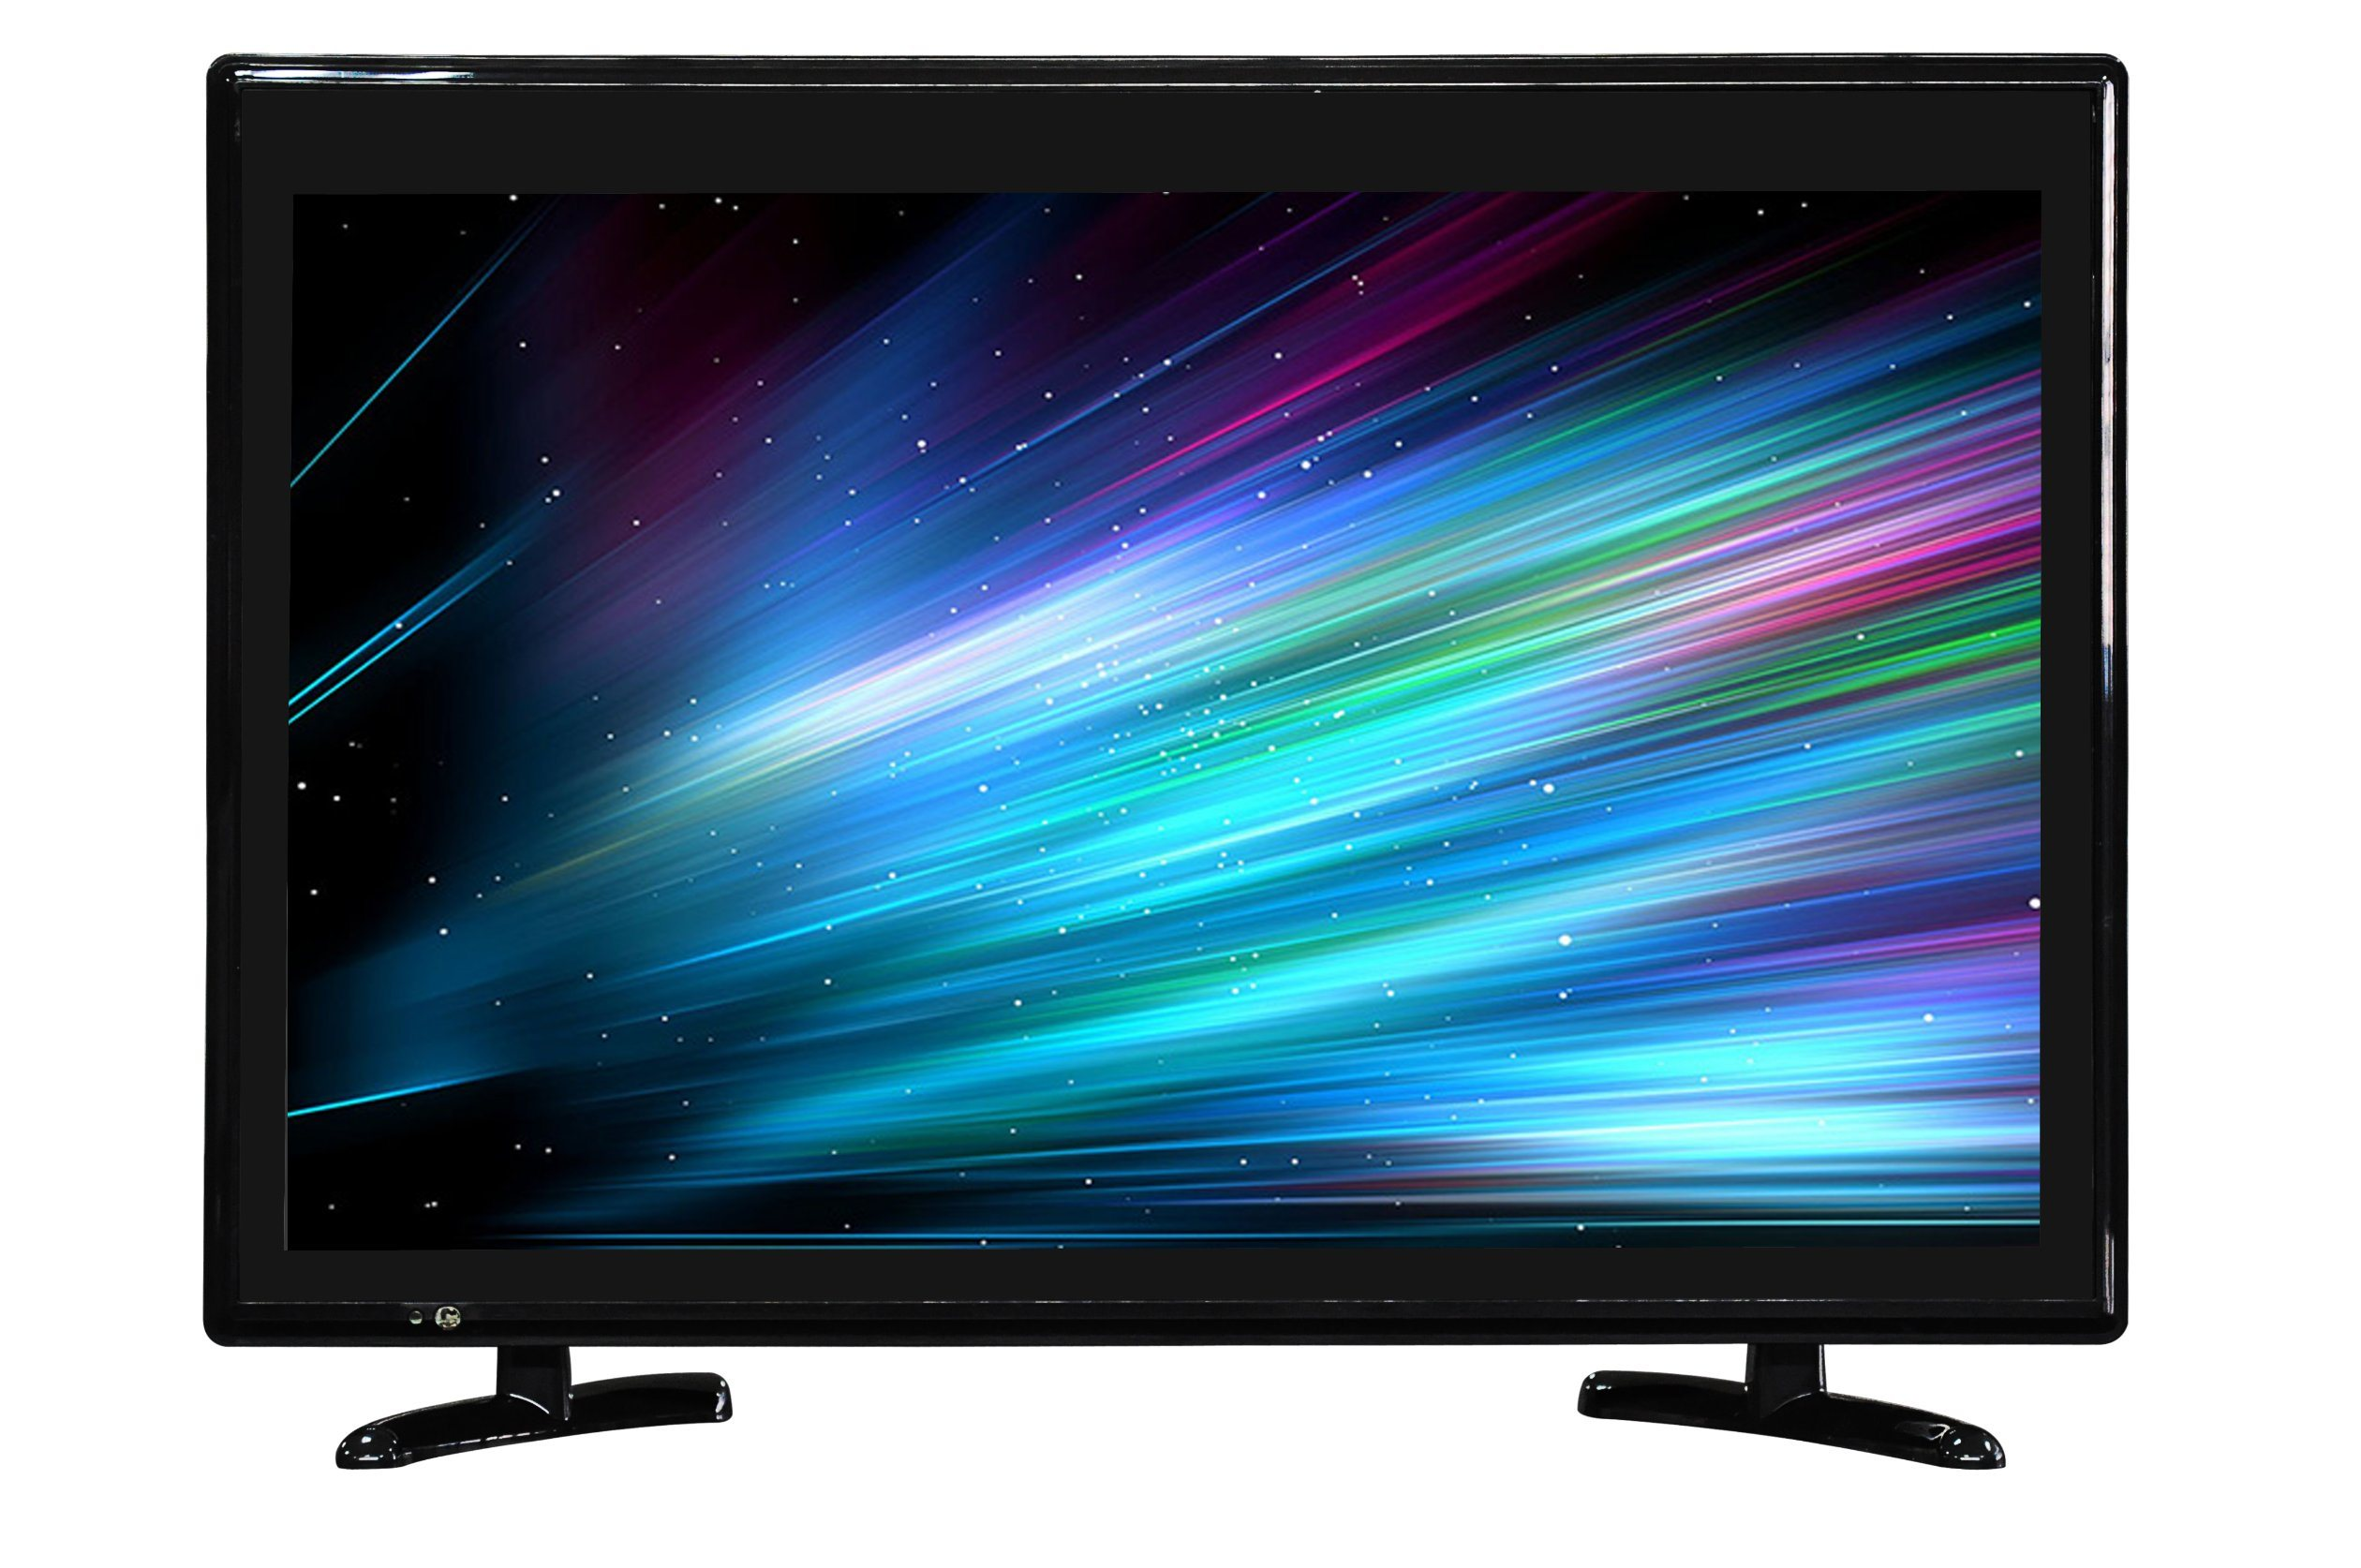 Flat Screen 17/19/ 22 Inches LED LCD TV Color TV Smart TV Television